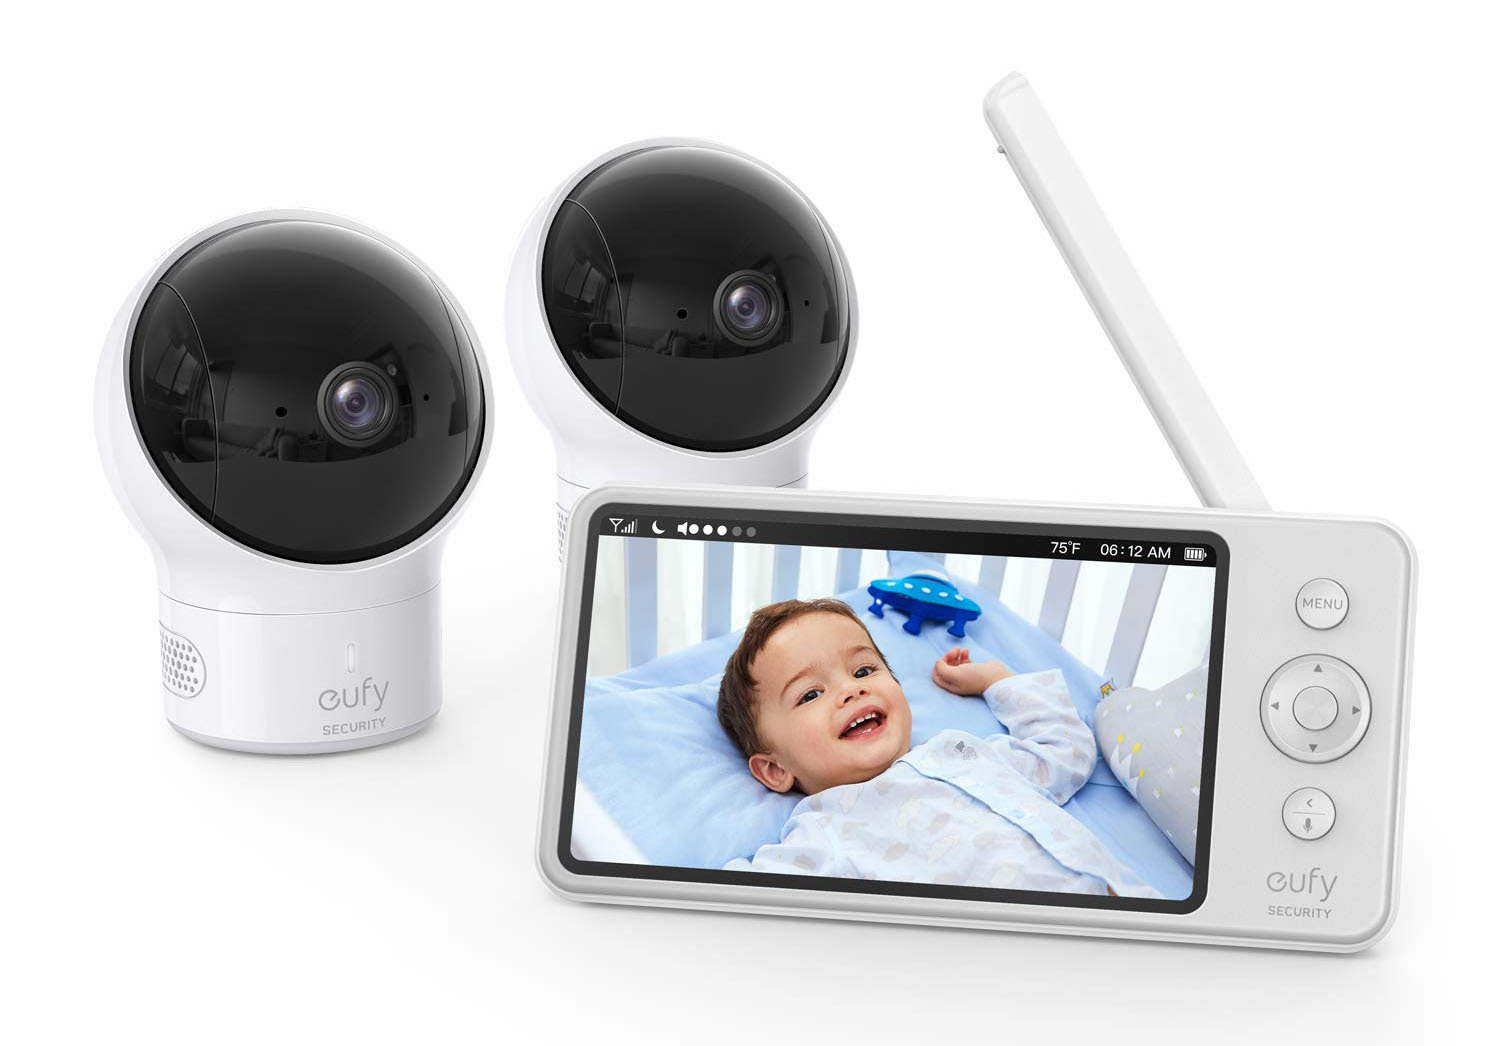 Eufy's two-camera baby monitor kit is $50 off again at Amazon